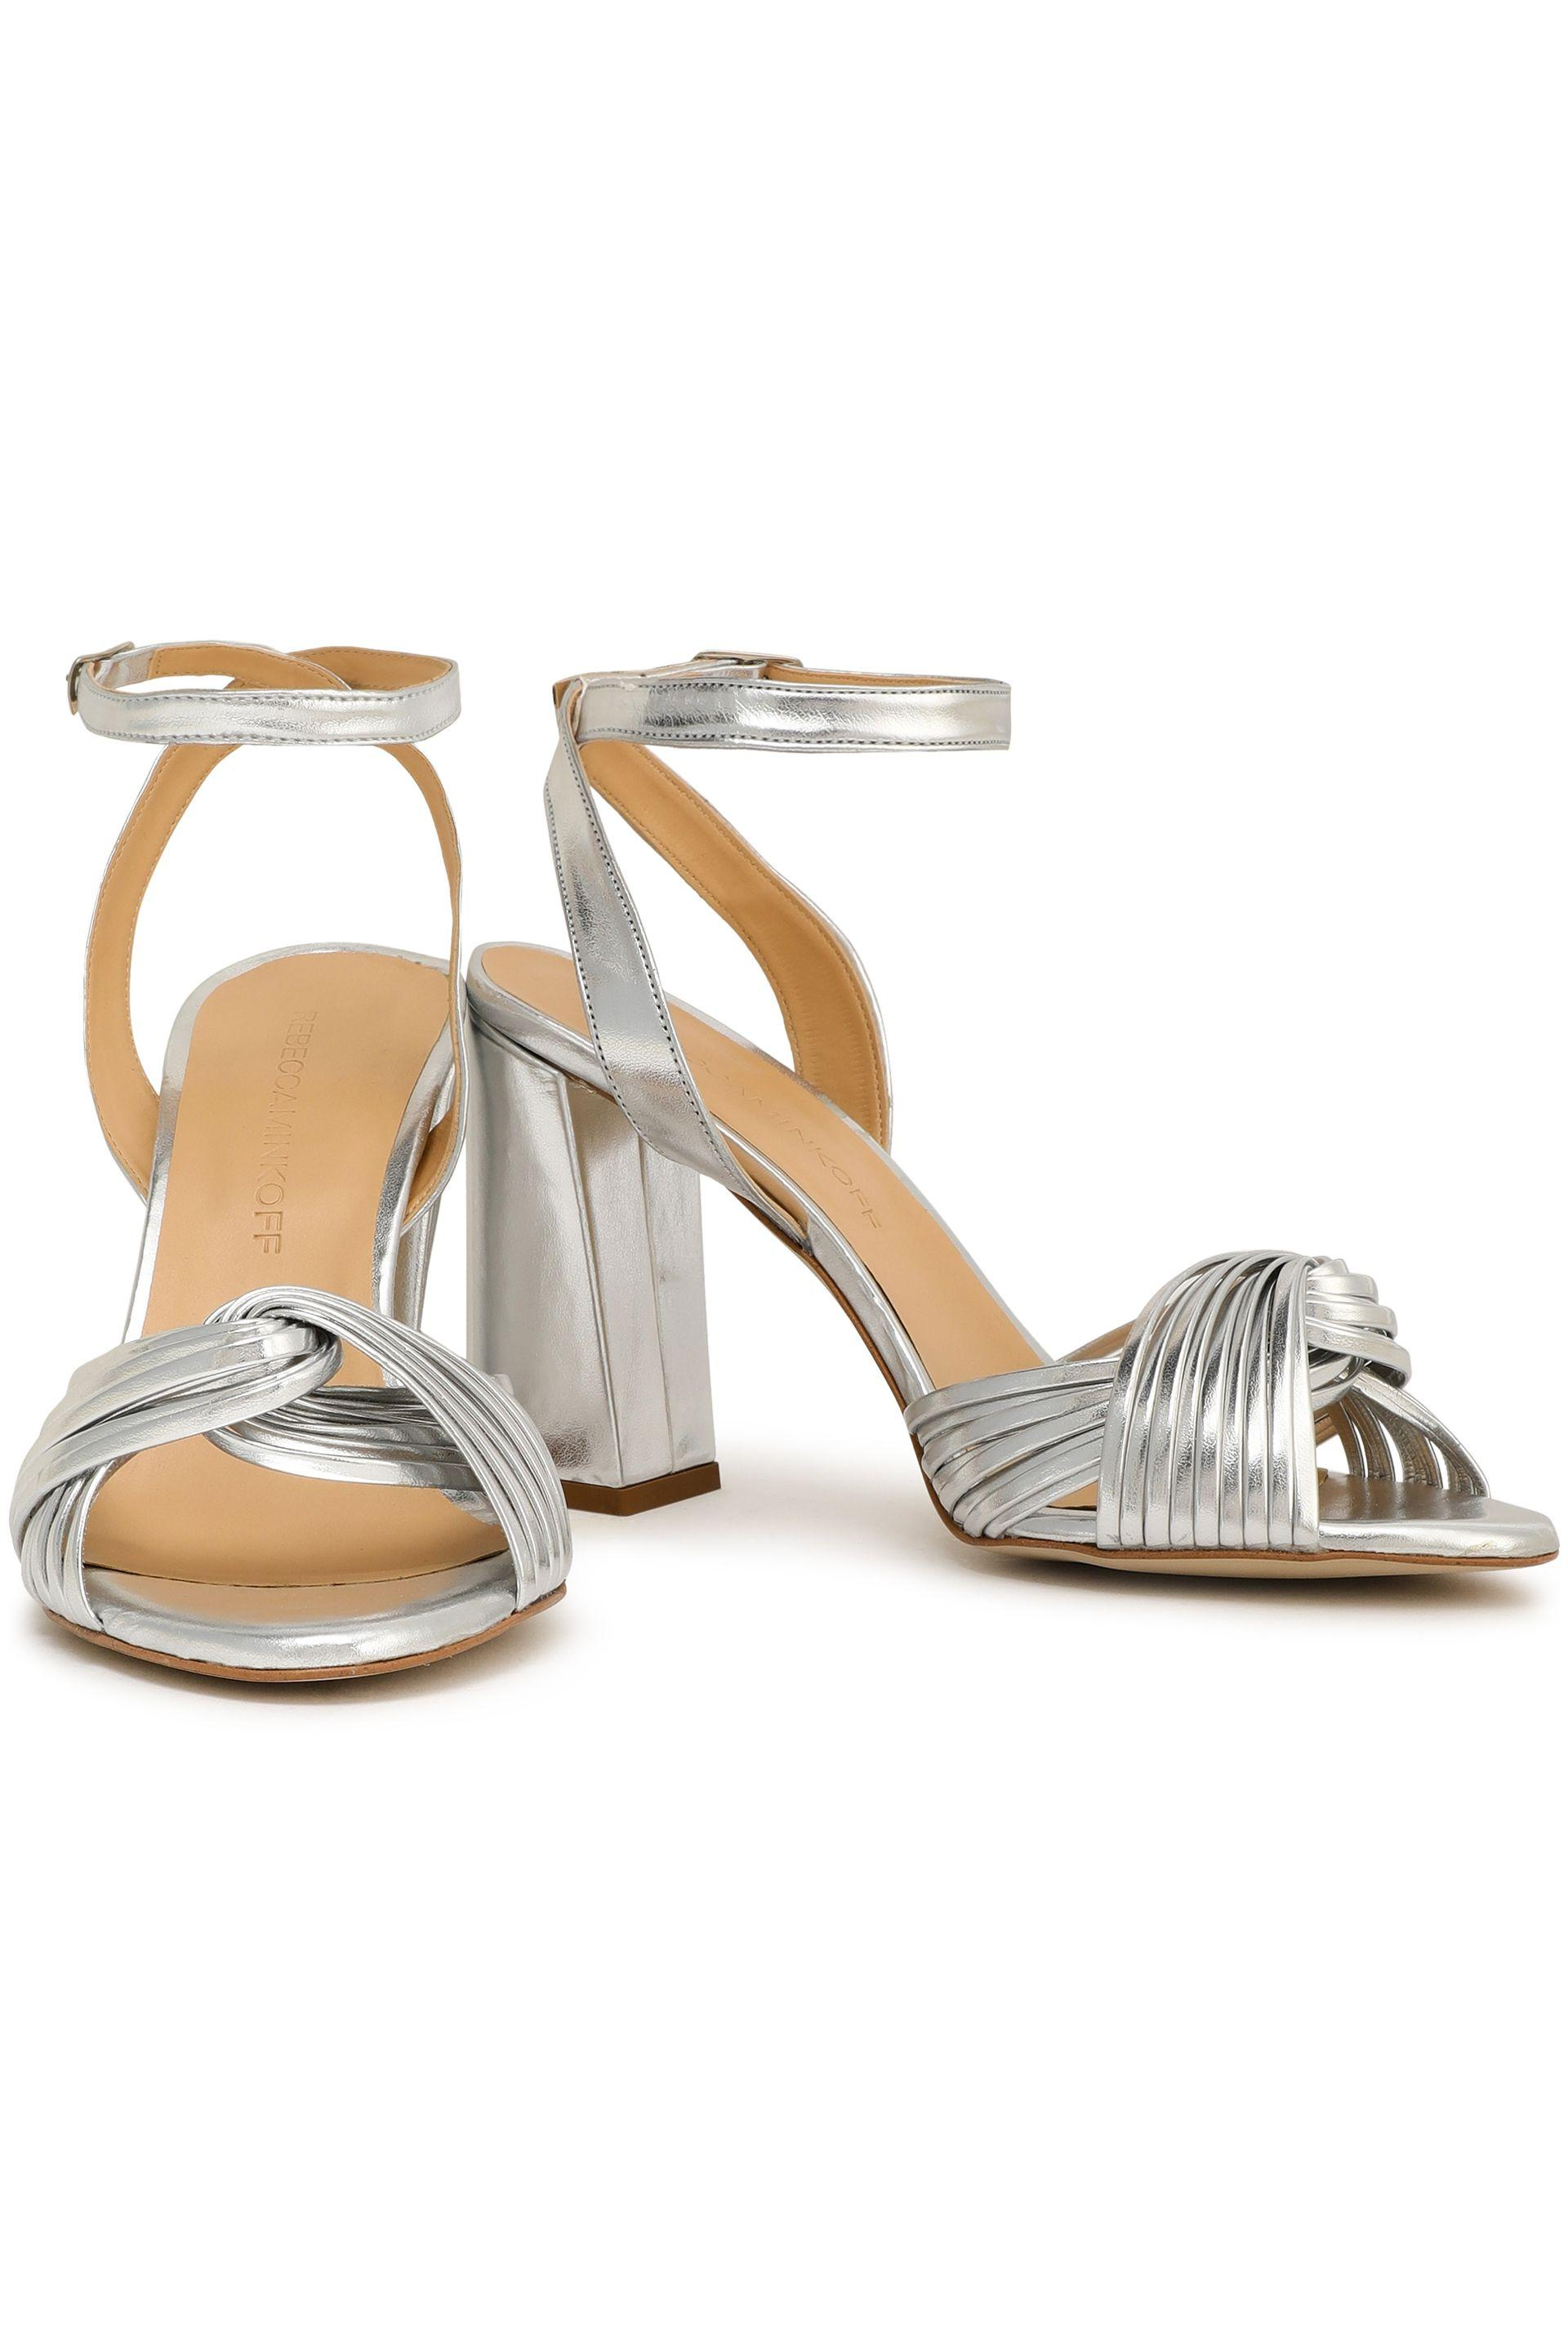 39eca984a54 Rebecca Minkoff Metallic Knotted Mirrored Faux Leather Sandals Silver